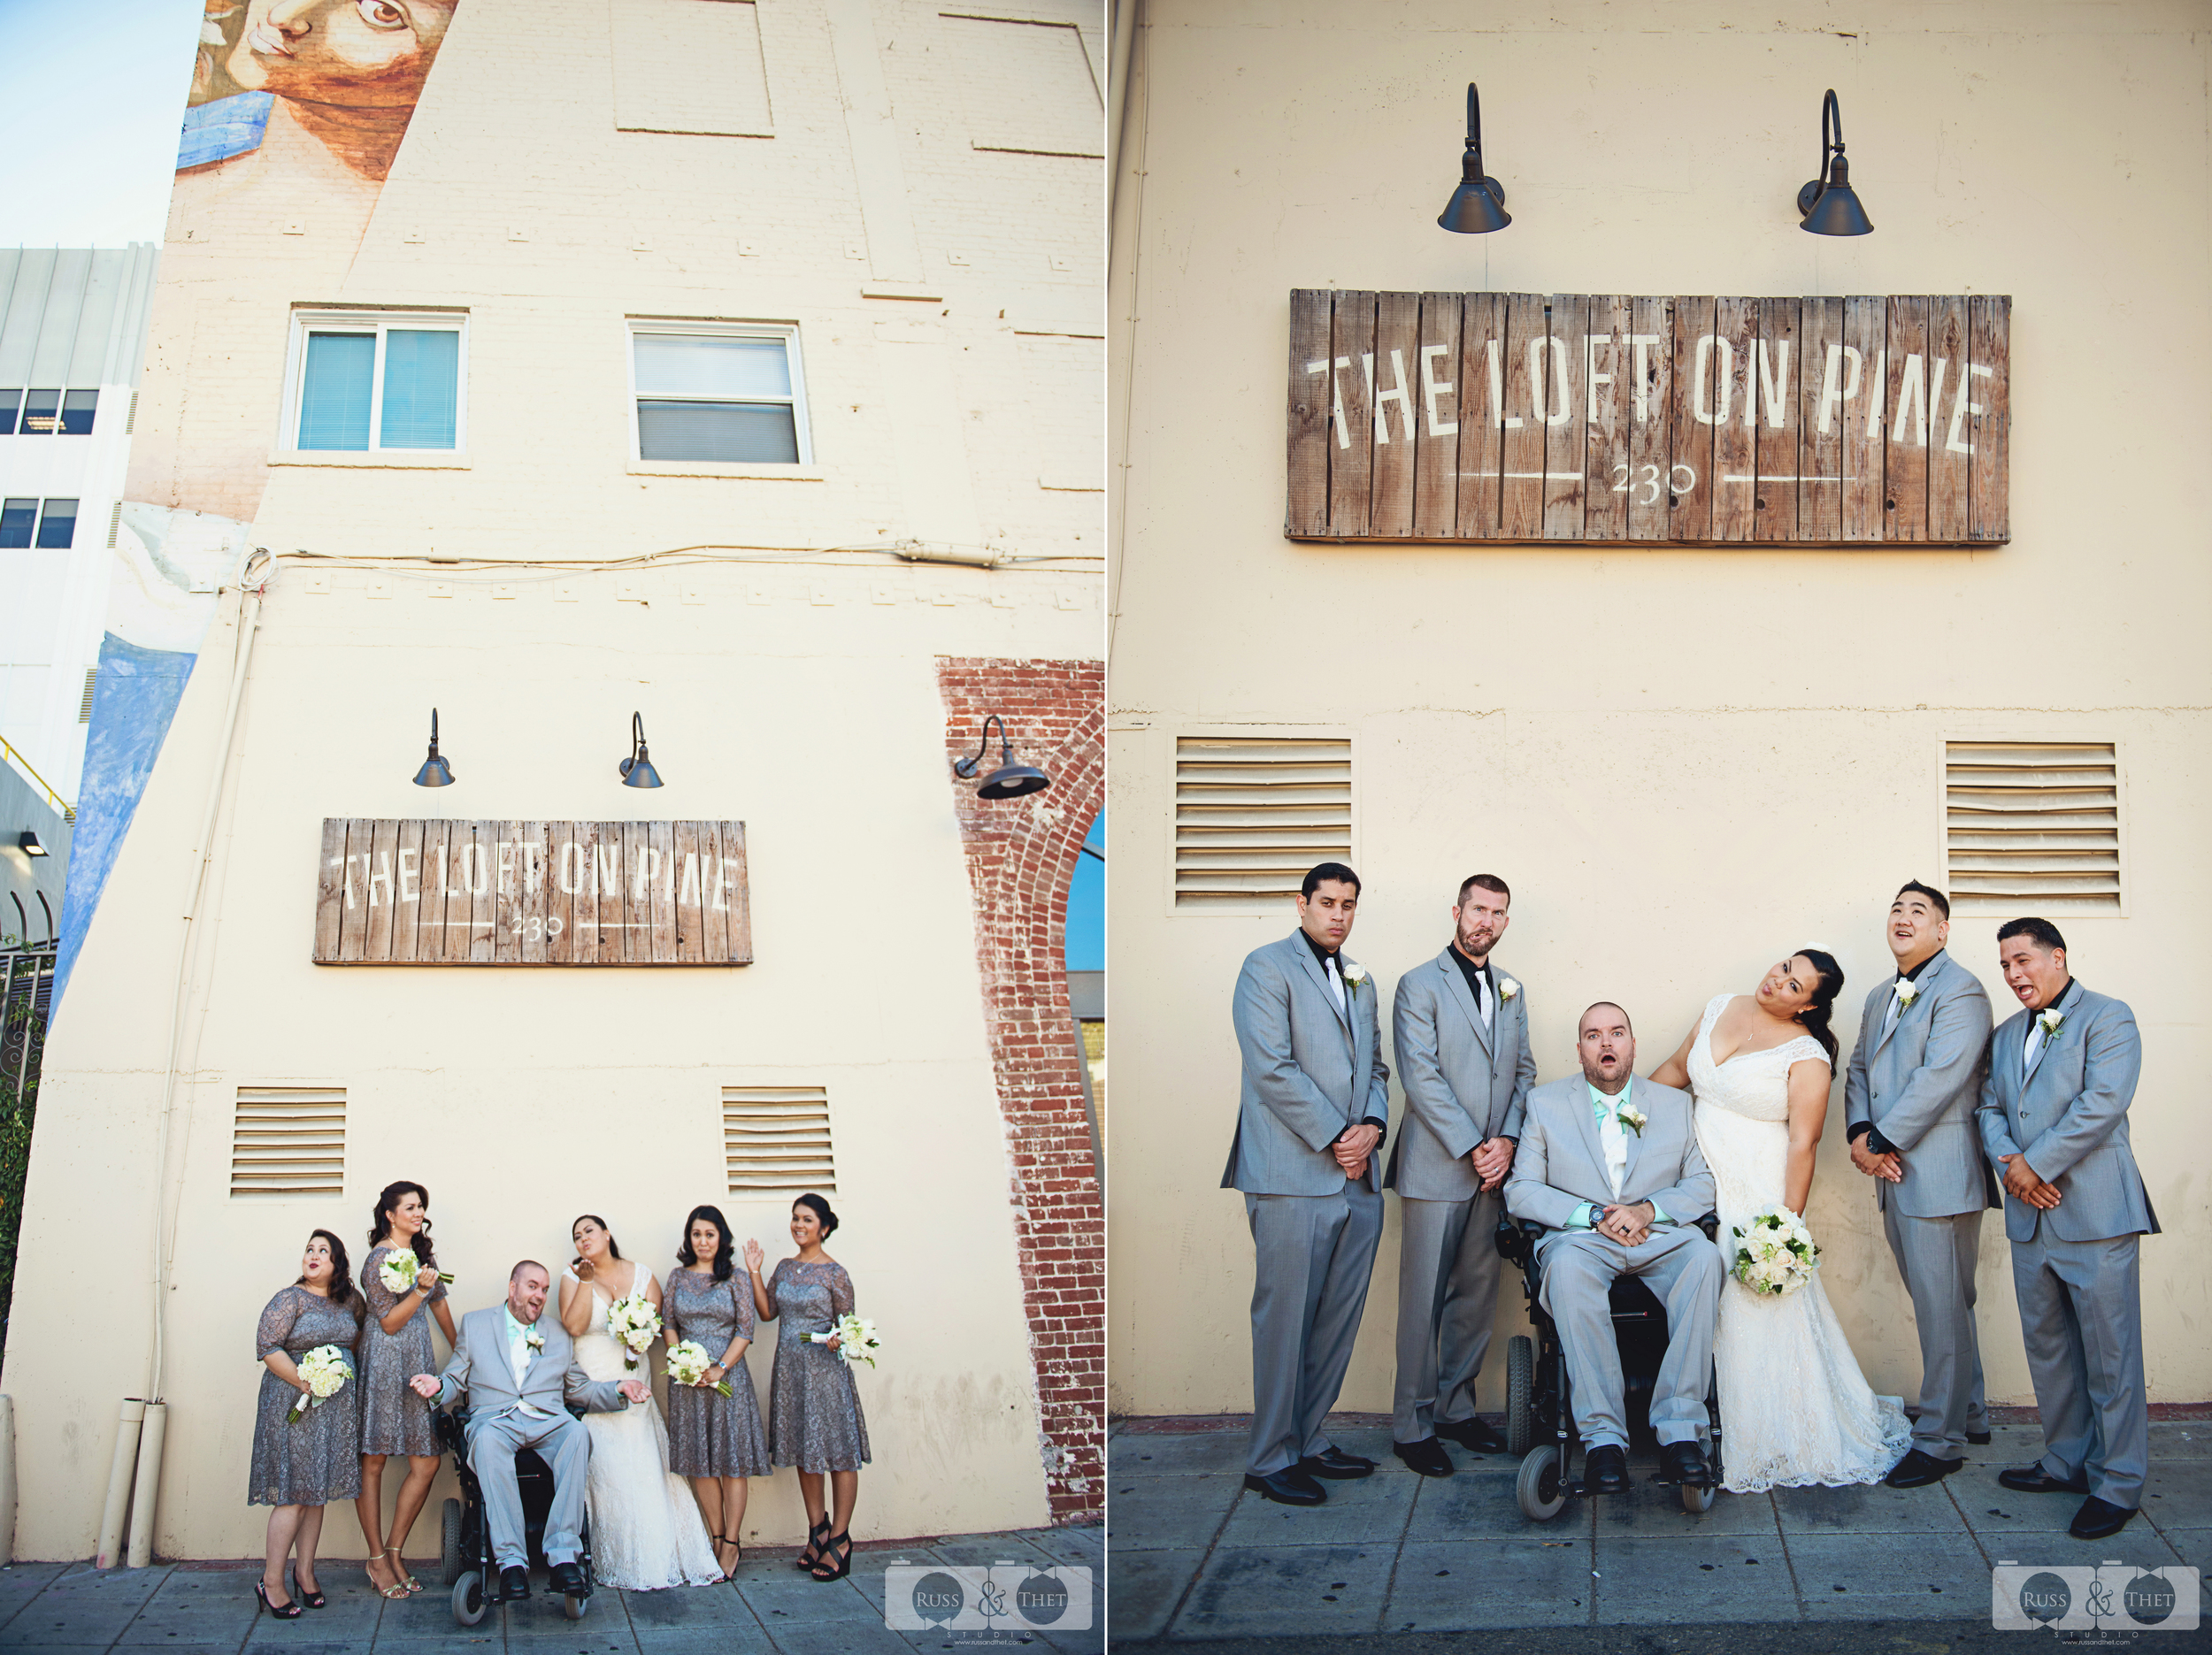 long-beach-wedding-photographer_102.jpg